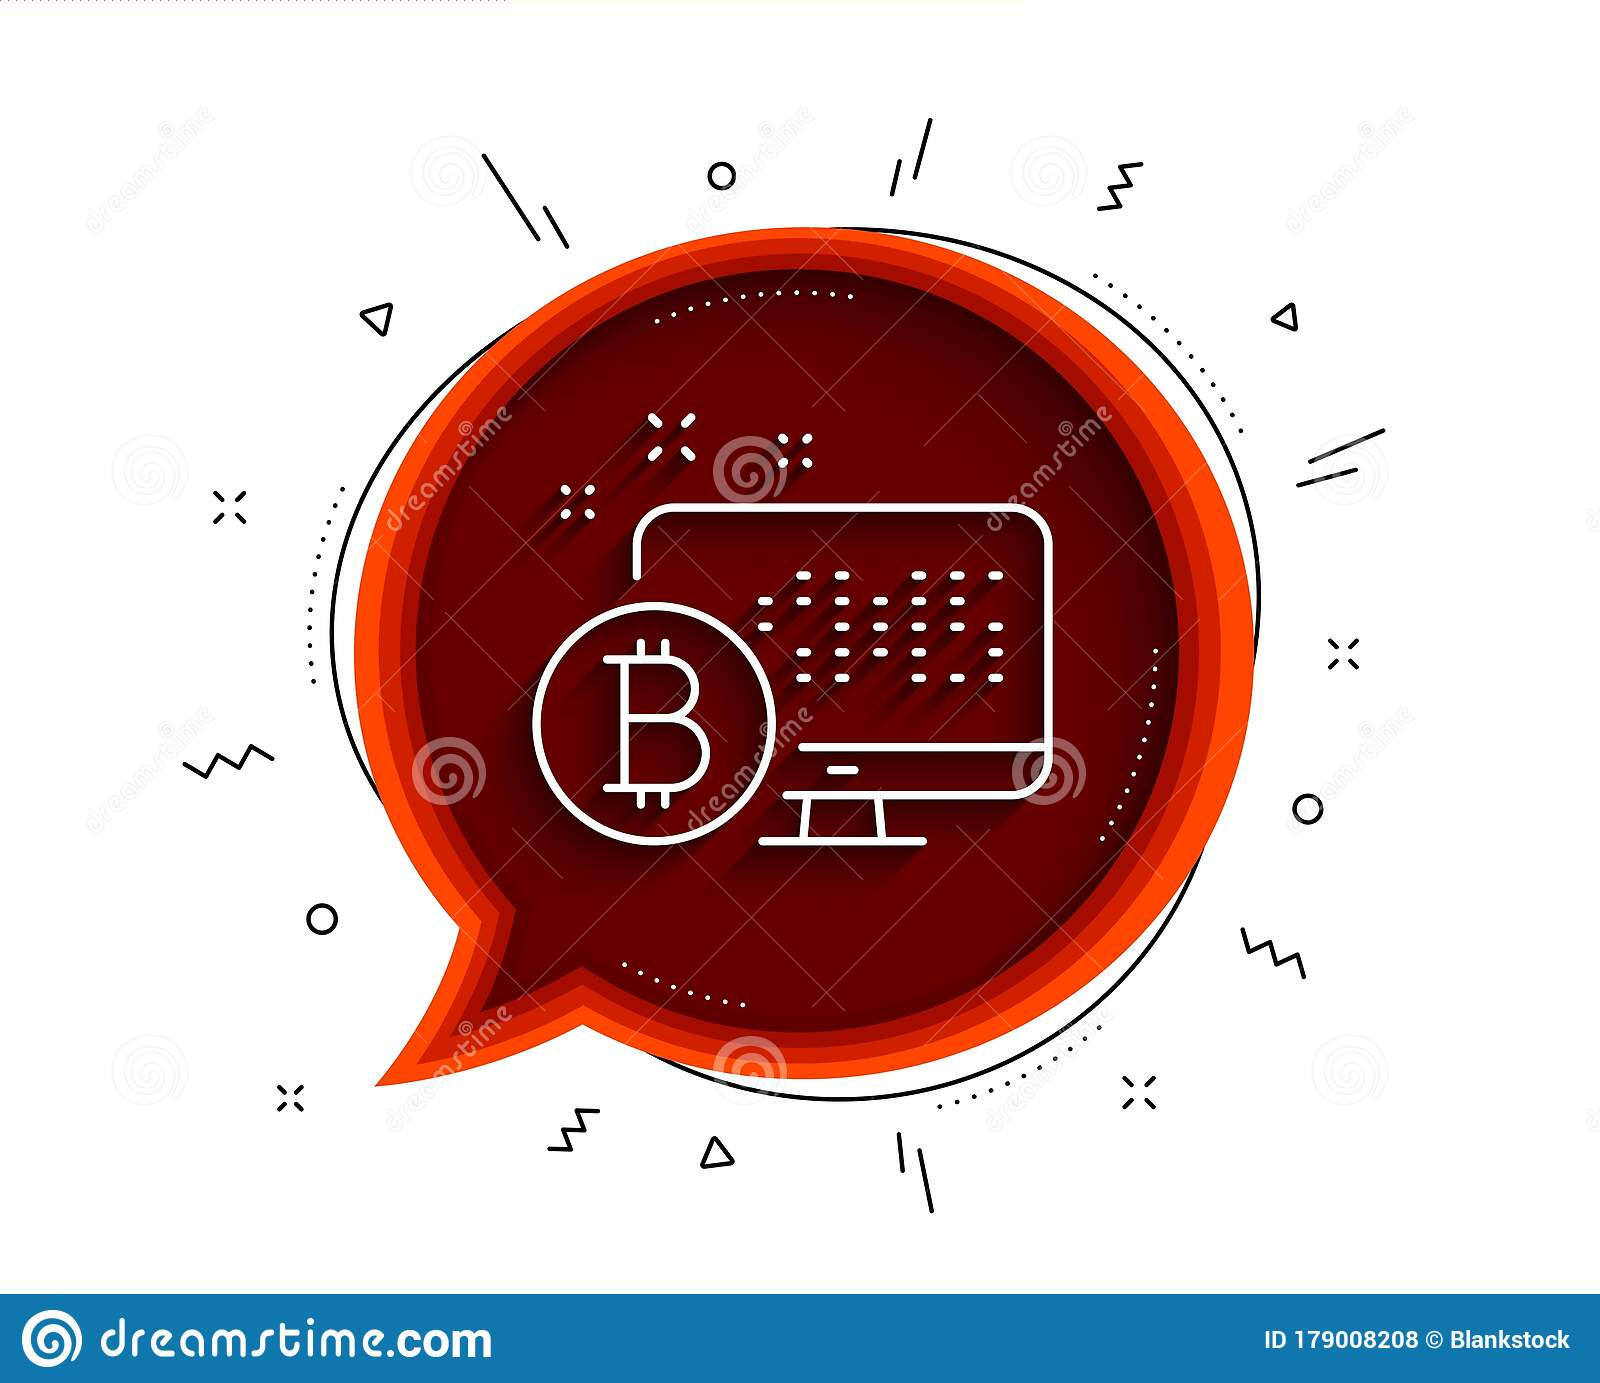 cryptocurrency monitor